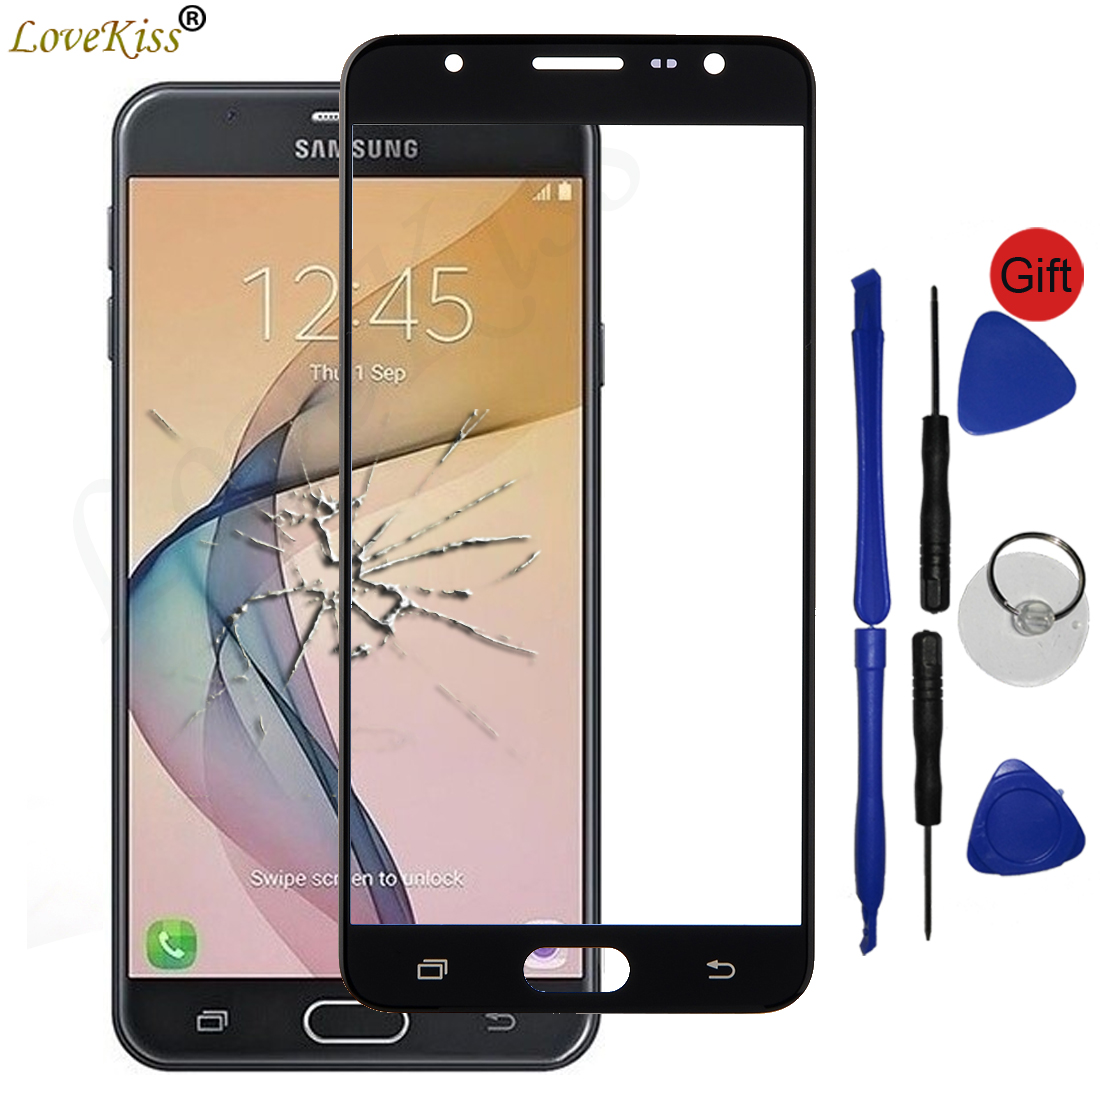 J7Prime G610F Front Panel For <font><b>Samsung</b></font> <font><b>Galaxy</b></font> <font><b>J7</b></font> Prime 2 J7Prime <font><b>2018</b></font> G611F Touch Screen Sensor LCD <font><b>Display</b></font> Digitizer Glass Cover image